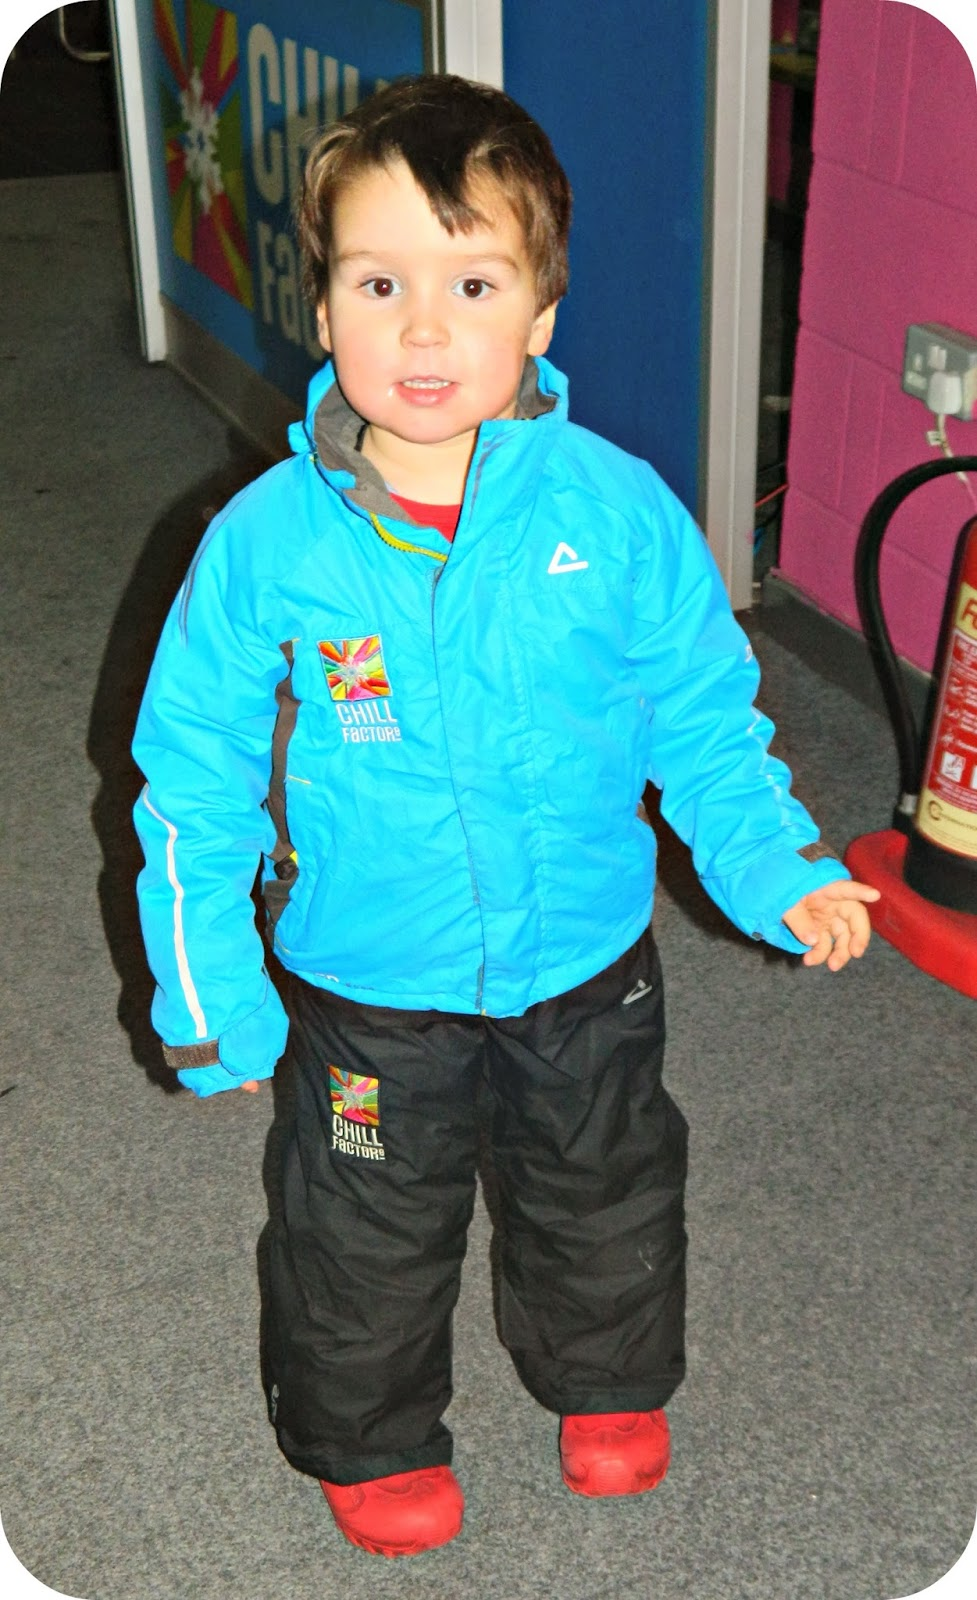 Ready for snow play at Chill Factore Manchester